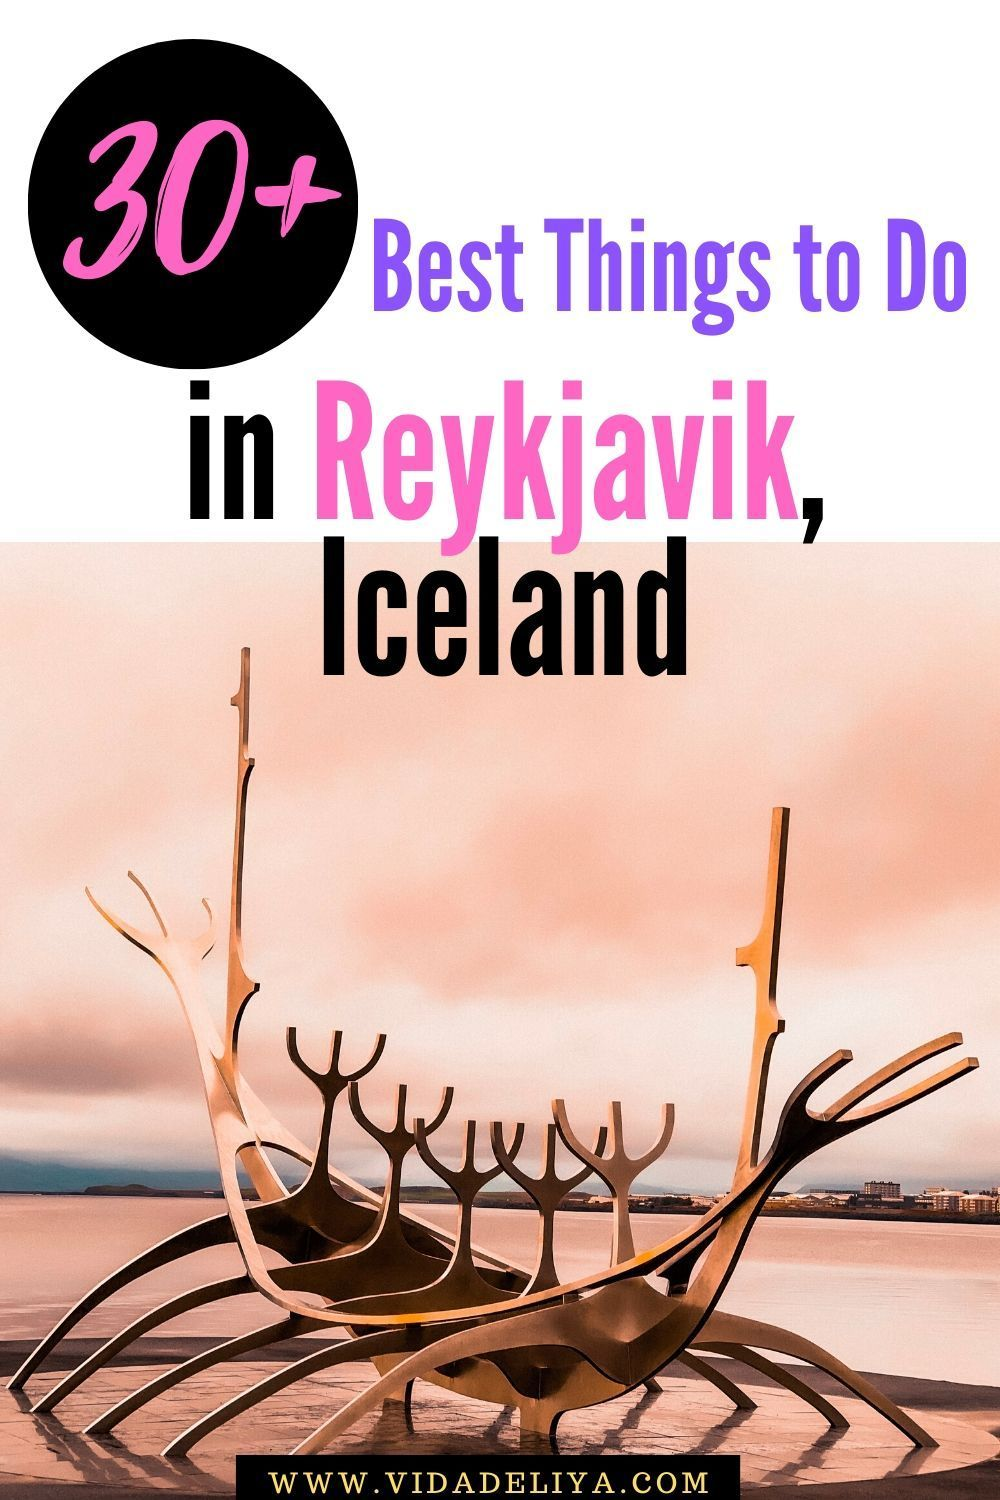 Wondering how to spend a day or 2 at Reykjavik Iceland? This is a curated list of the 30  best things in this Icelandic capital city from the guided tour at Harpa Concert Hall to the street art shopping along Laugavegur Icelandic street food (Icelandic meat soup & hotdogs) and more! Recommendations also include day trips out of Reykjavik to famous waterfalls (Gullfoss Seljalandsfoss) craters (Kerid Crater) & so much more. #Iceland #style #shopping #styles #outfit #pretty #girl #girls #...